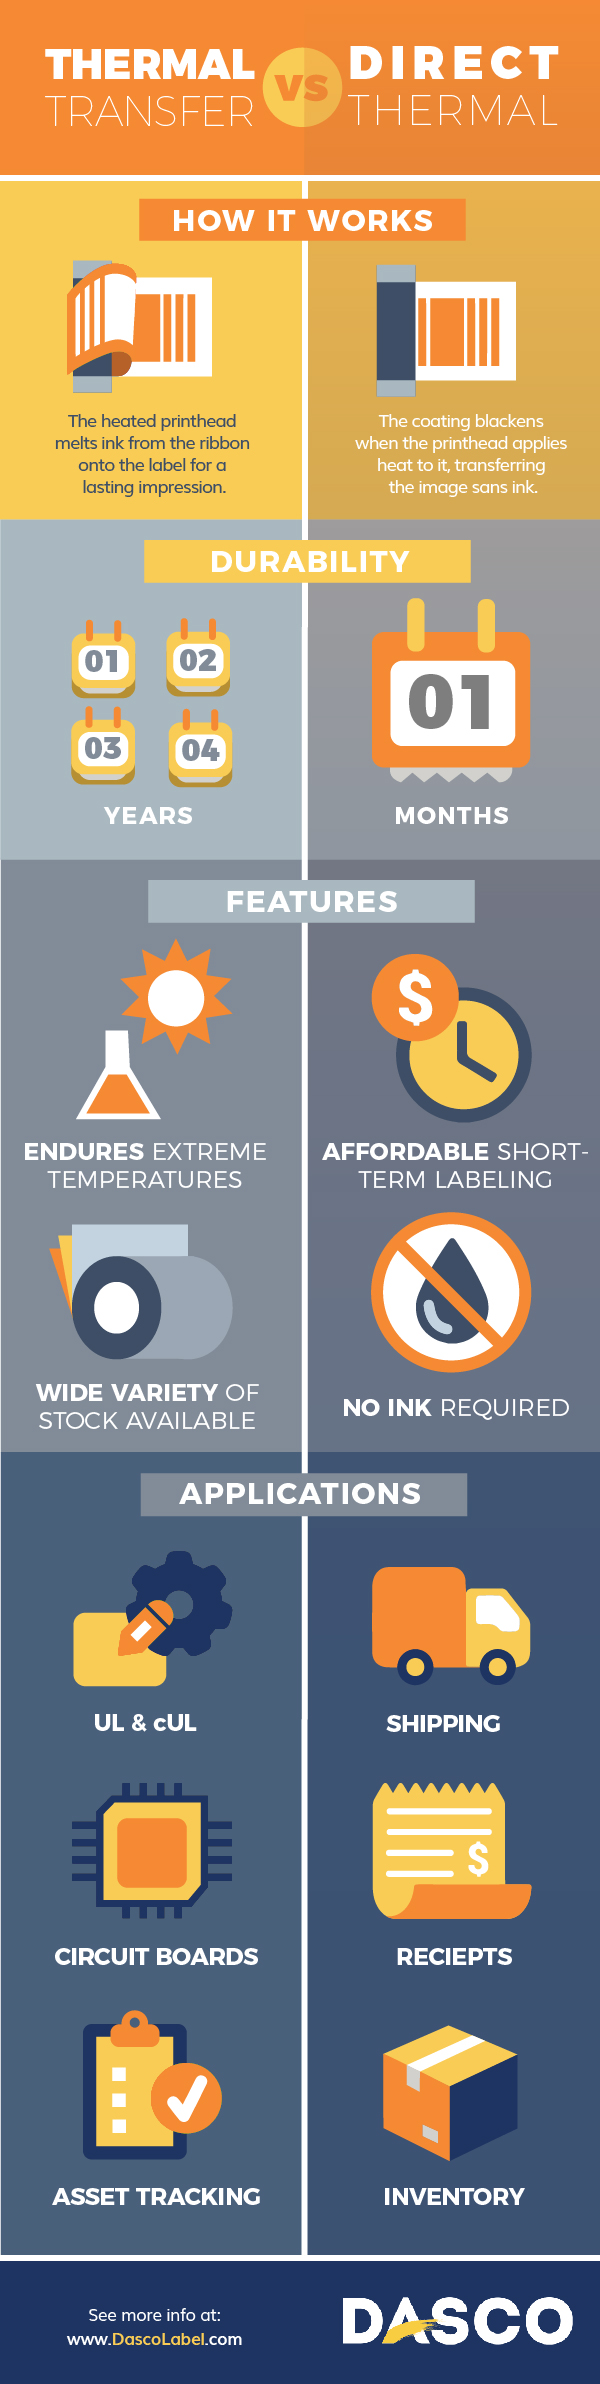 Infographic with difference between direct thermal and thermal transfer printing